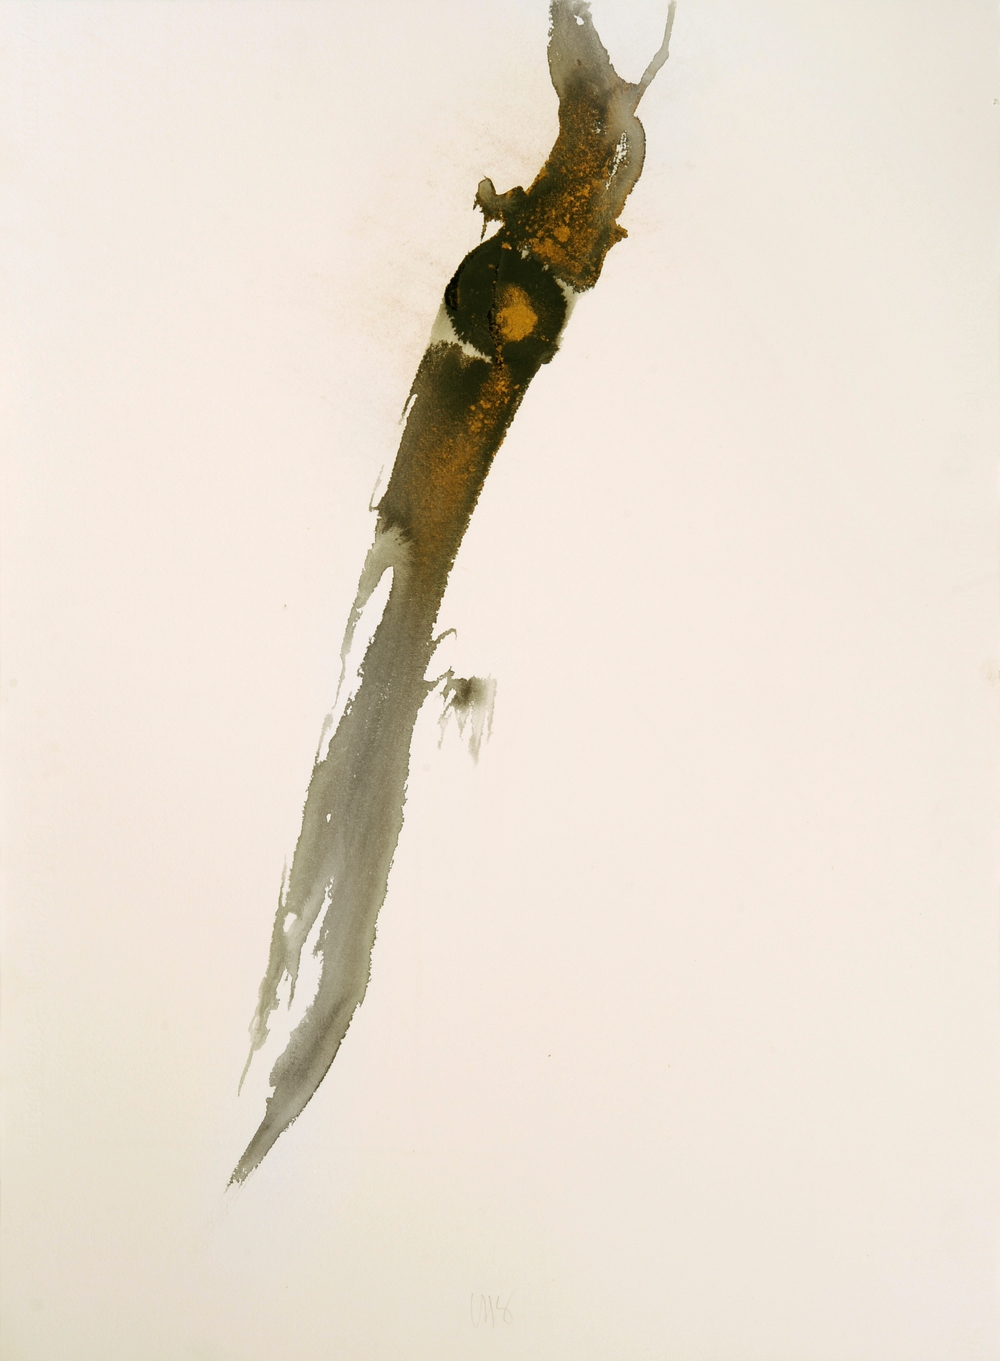 "senza titolo, dalla serie ""Epifania dell'innocenza"", 1992, acrilico su carta Fabriano, cm 76 x 57  untitled, from the series ""Epifania dell'innocenza"", 1992, acrylic on Fabriano paper, cm 76 x 57"